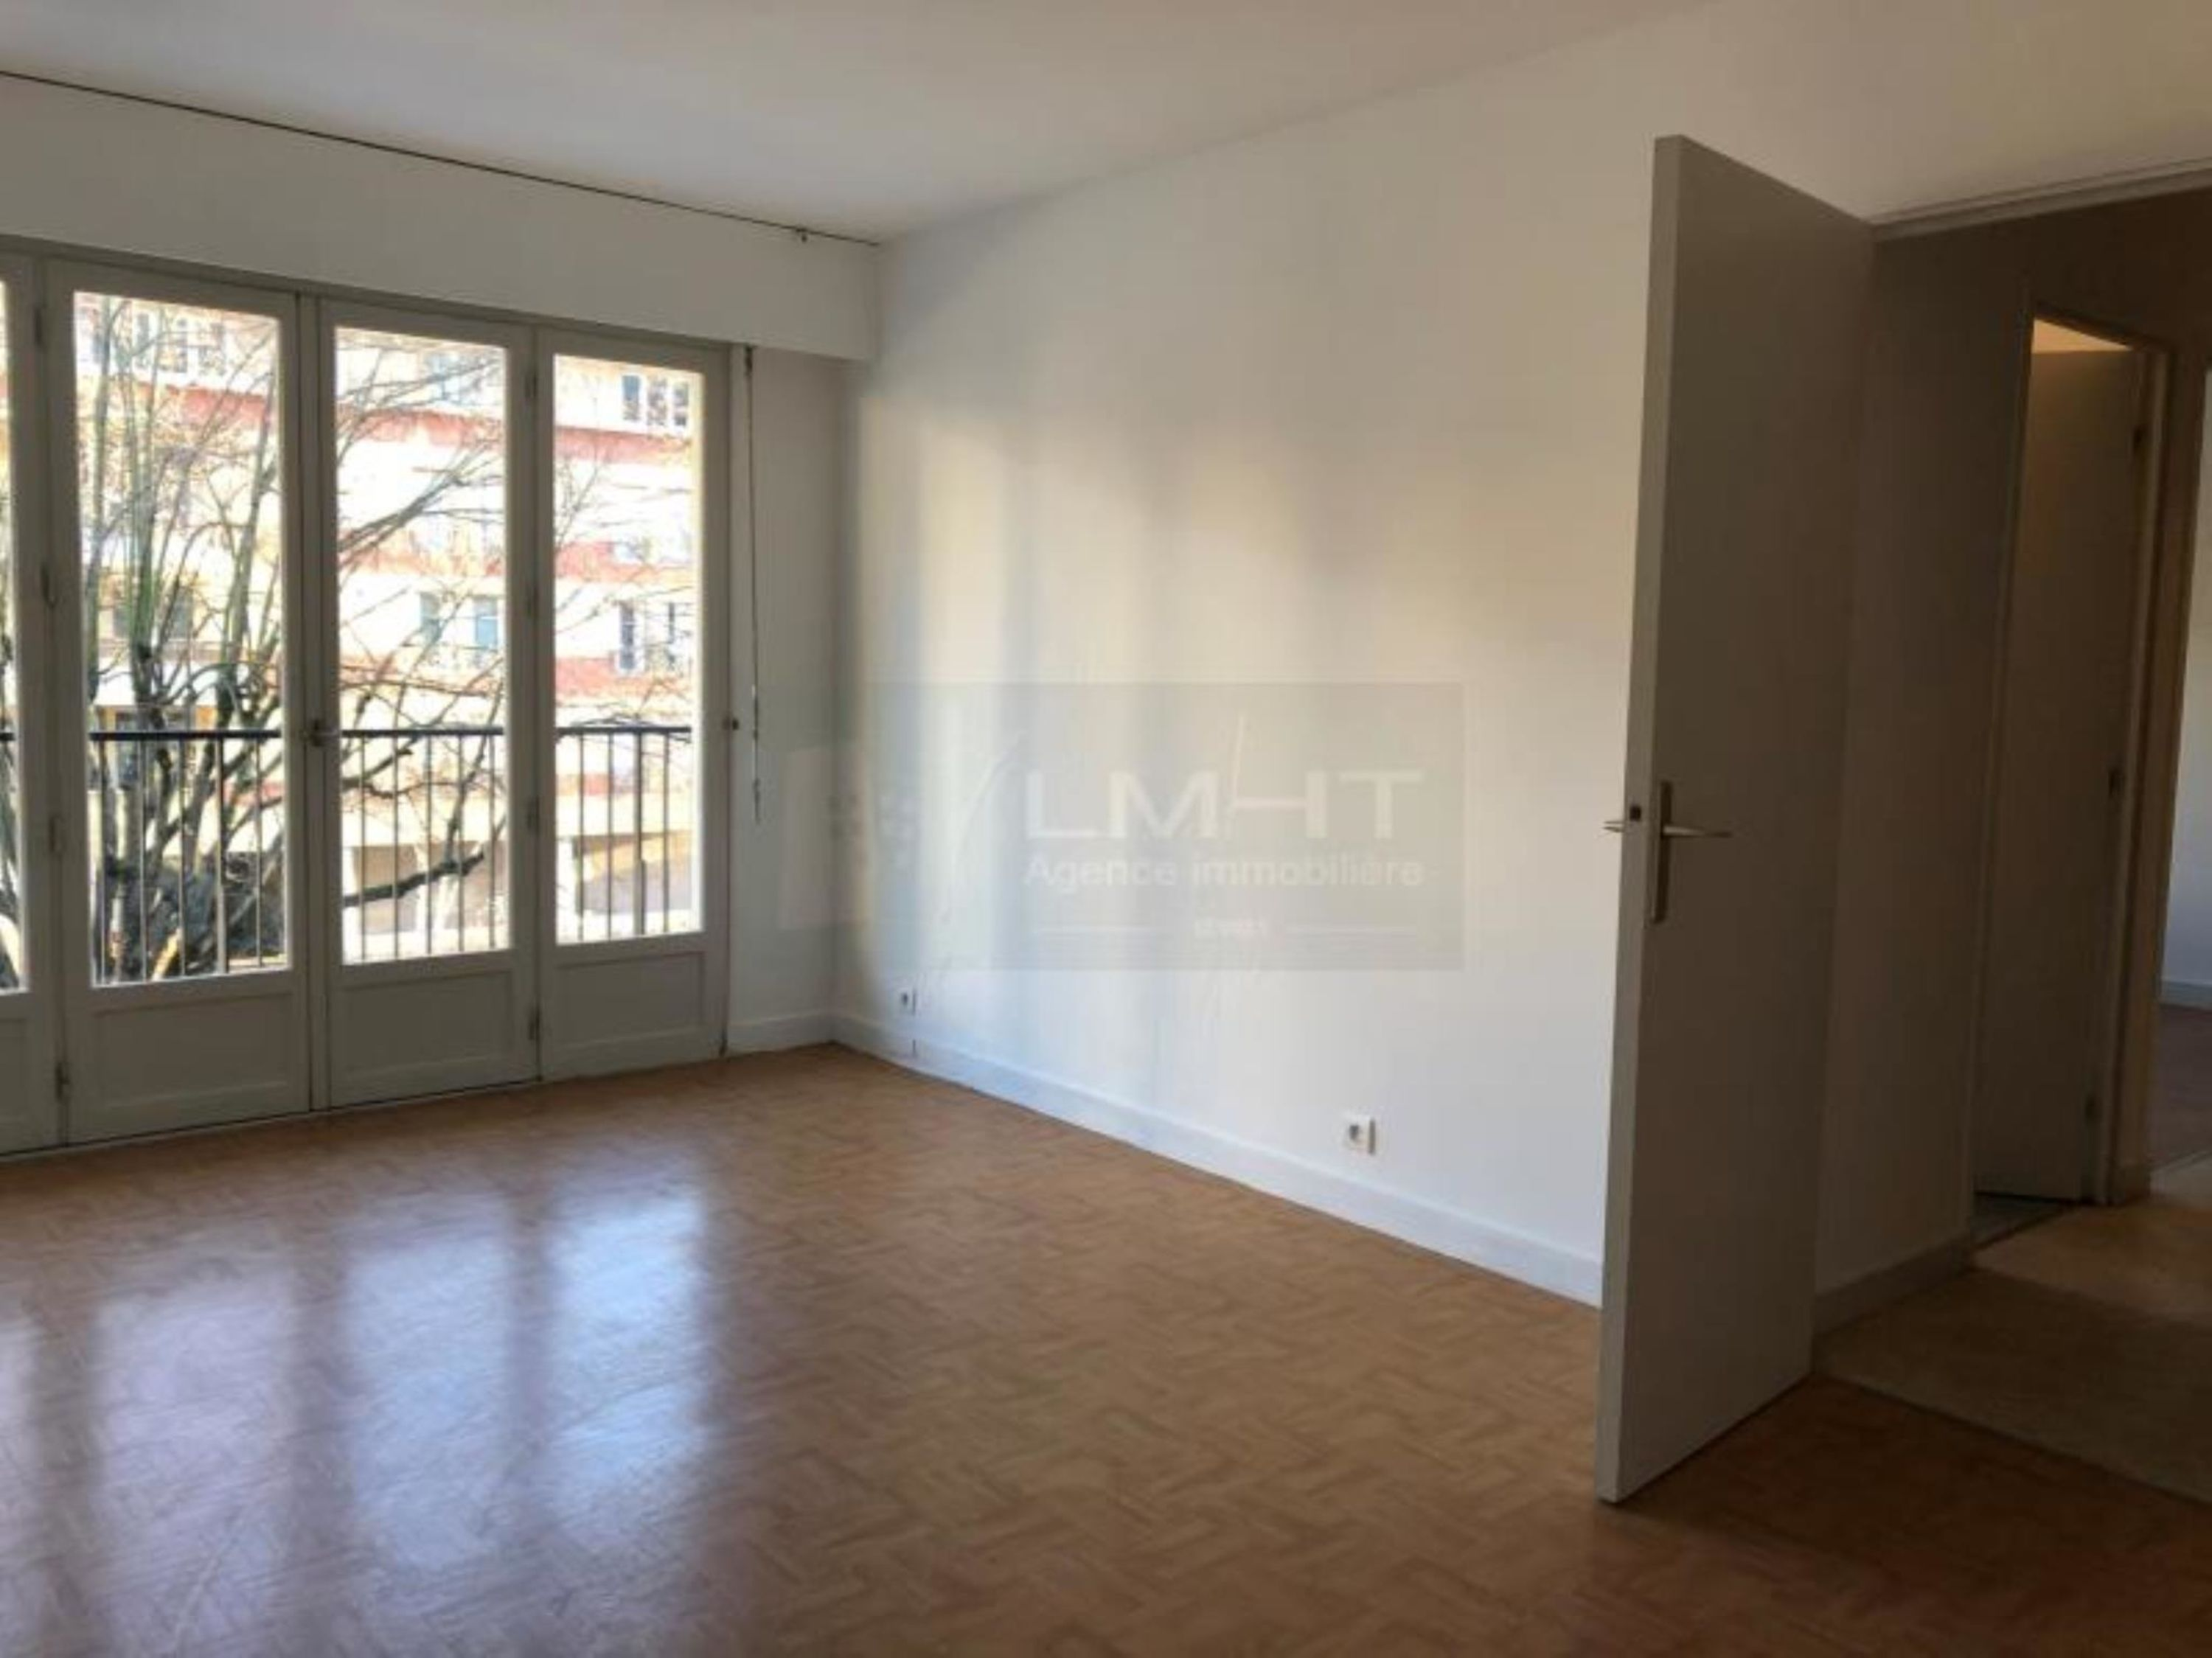 agence immobilière sevres 92 le chesnay 78 achat vente location appartement maison immobilier LMHT ANF HFGPSTRC